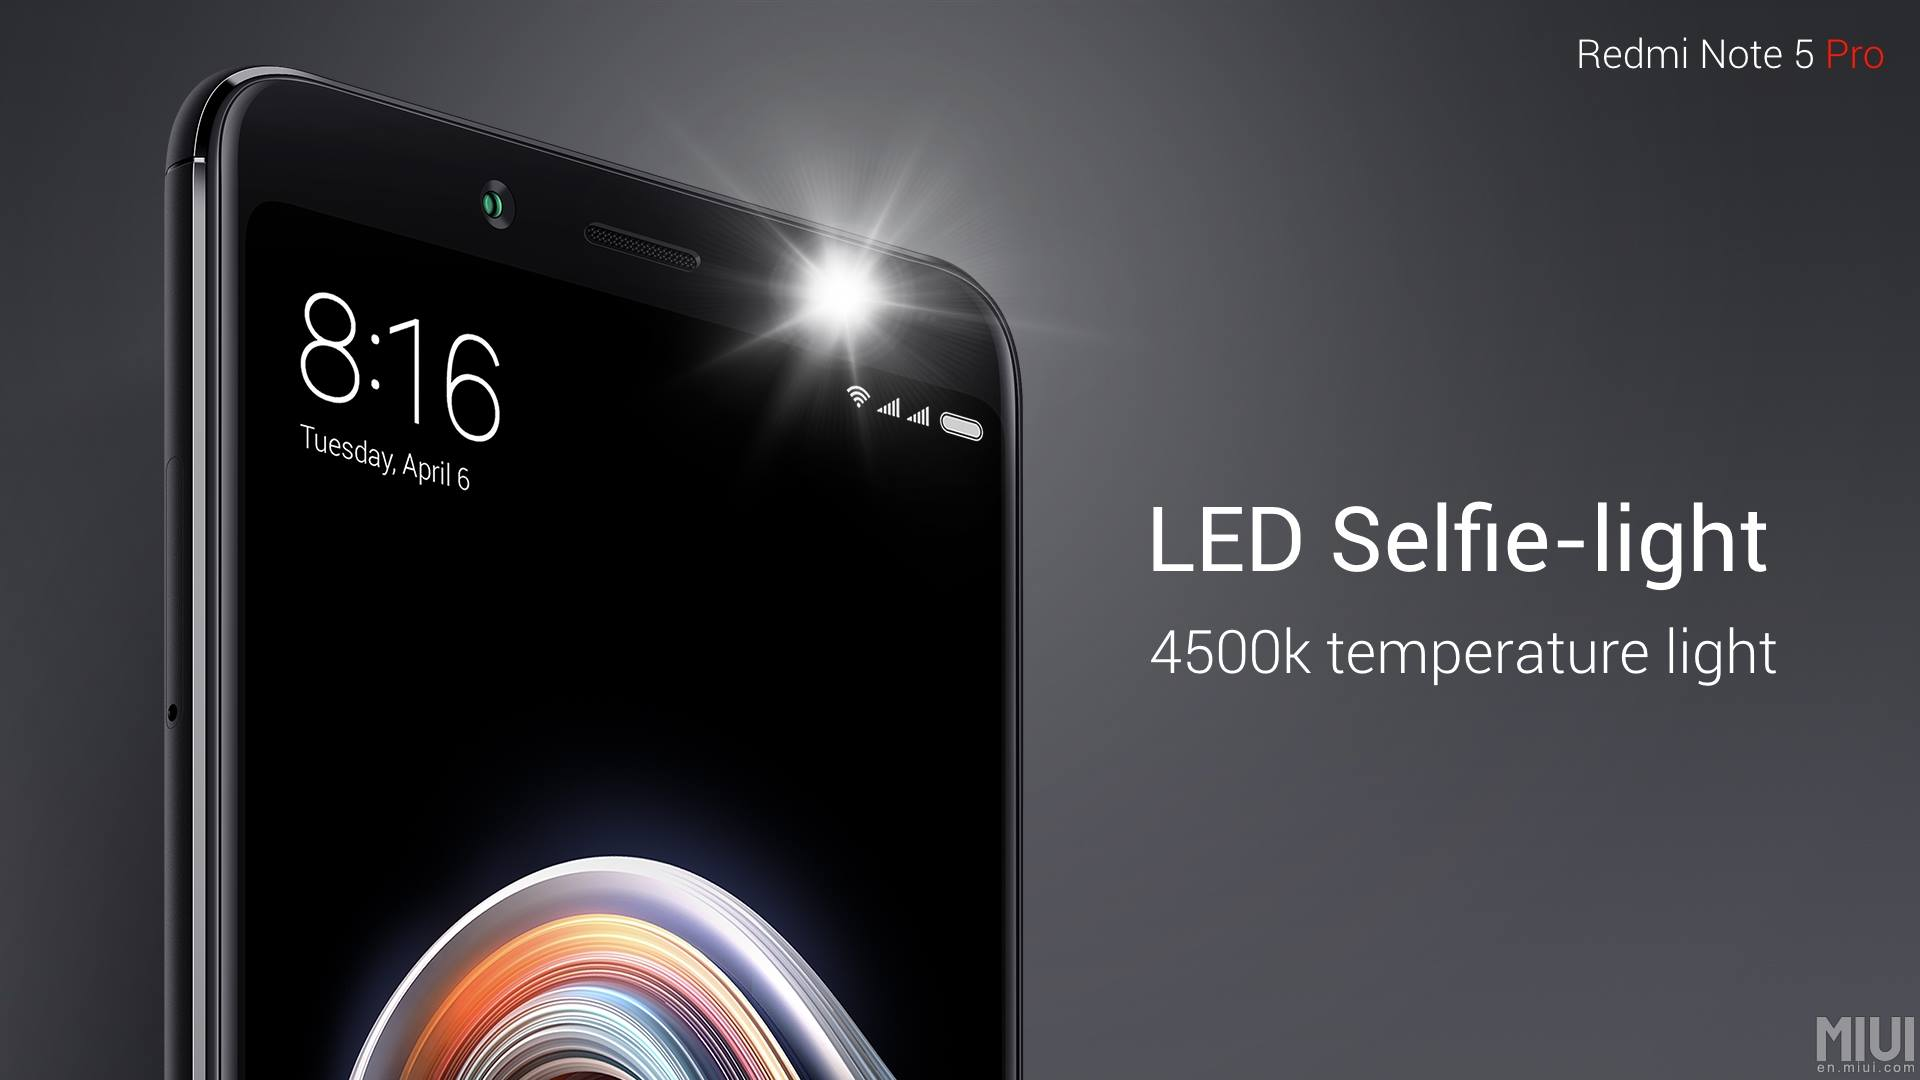 Redmi Note 5 Pro Launched With Selfie Light Face Unlock